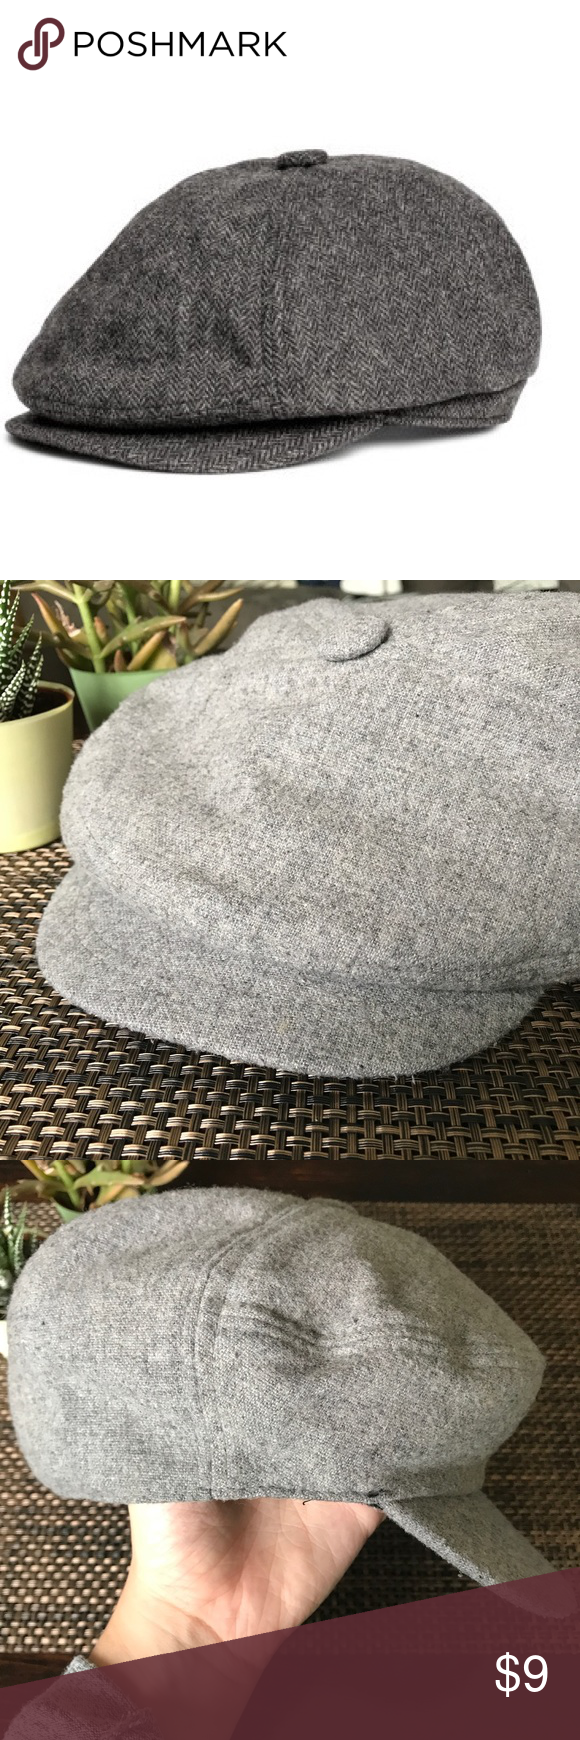 4cb780171f4 Men s H M flat cap H M flat cap. Excellent condition  no flaws! H M  Accessories Hats